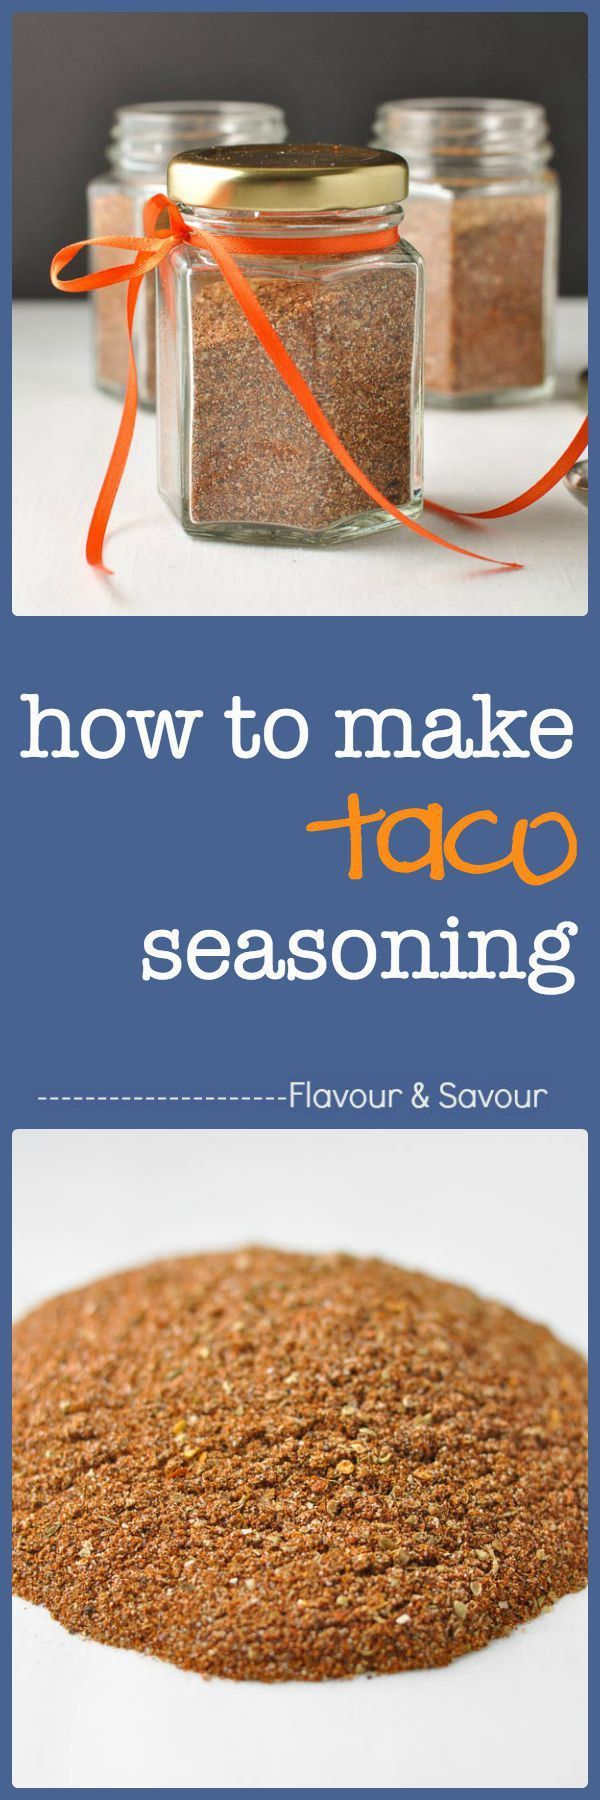 How to Make Taco Seasoning Mix. Takes less than 5 minutes! If you're on a mission to start cooking more from scratch, making your own seasoning mixes is one place to start.  You can avoid the fillers, flavour enhancers, anti-caking agents, and preservatives often found in packaged mixes, not to mention the packaging itself. Making this taco seasoning mix took me less than 5 minutes, much less time than it would have taken me to run to the store to pick up a package.